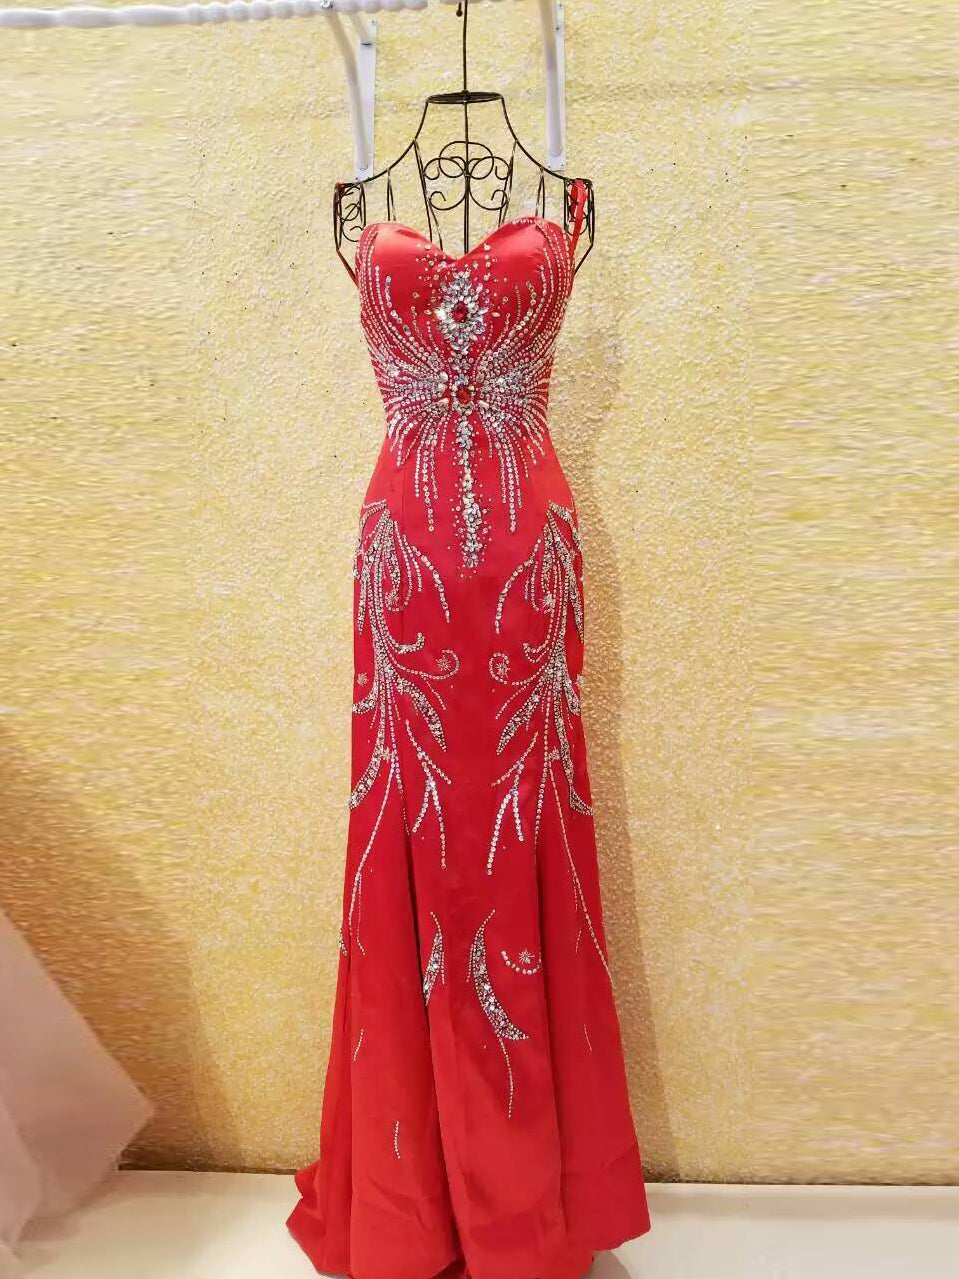 Red Chic Prom Dresses Sheath/Column Short Train Prom Dress/Evening Dress JKL072